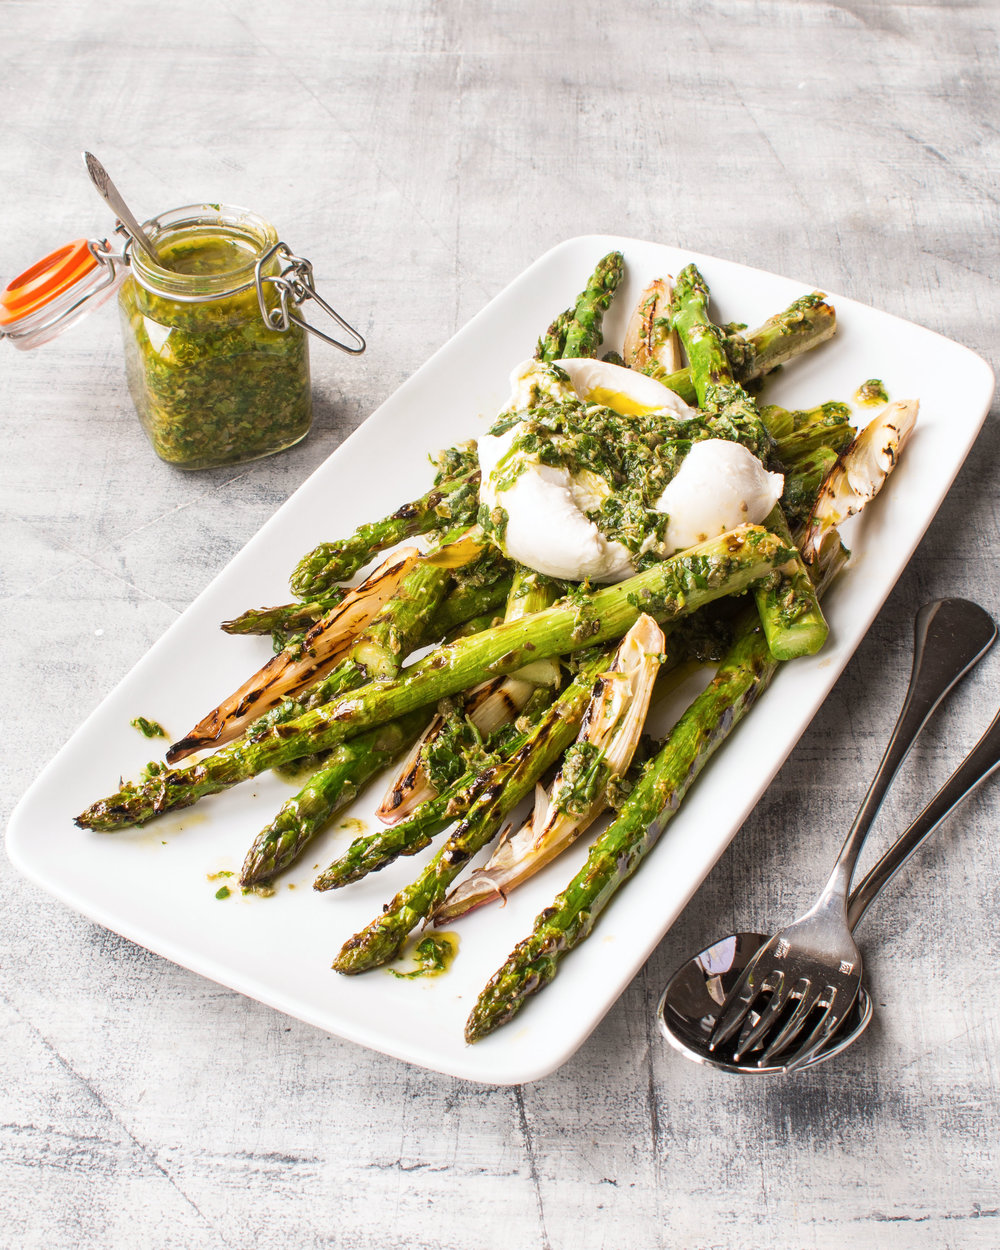 Griddled British asparagus and shallots with salsa verde and burrata.jpg